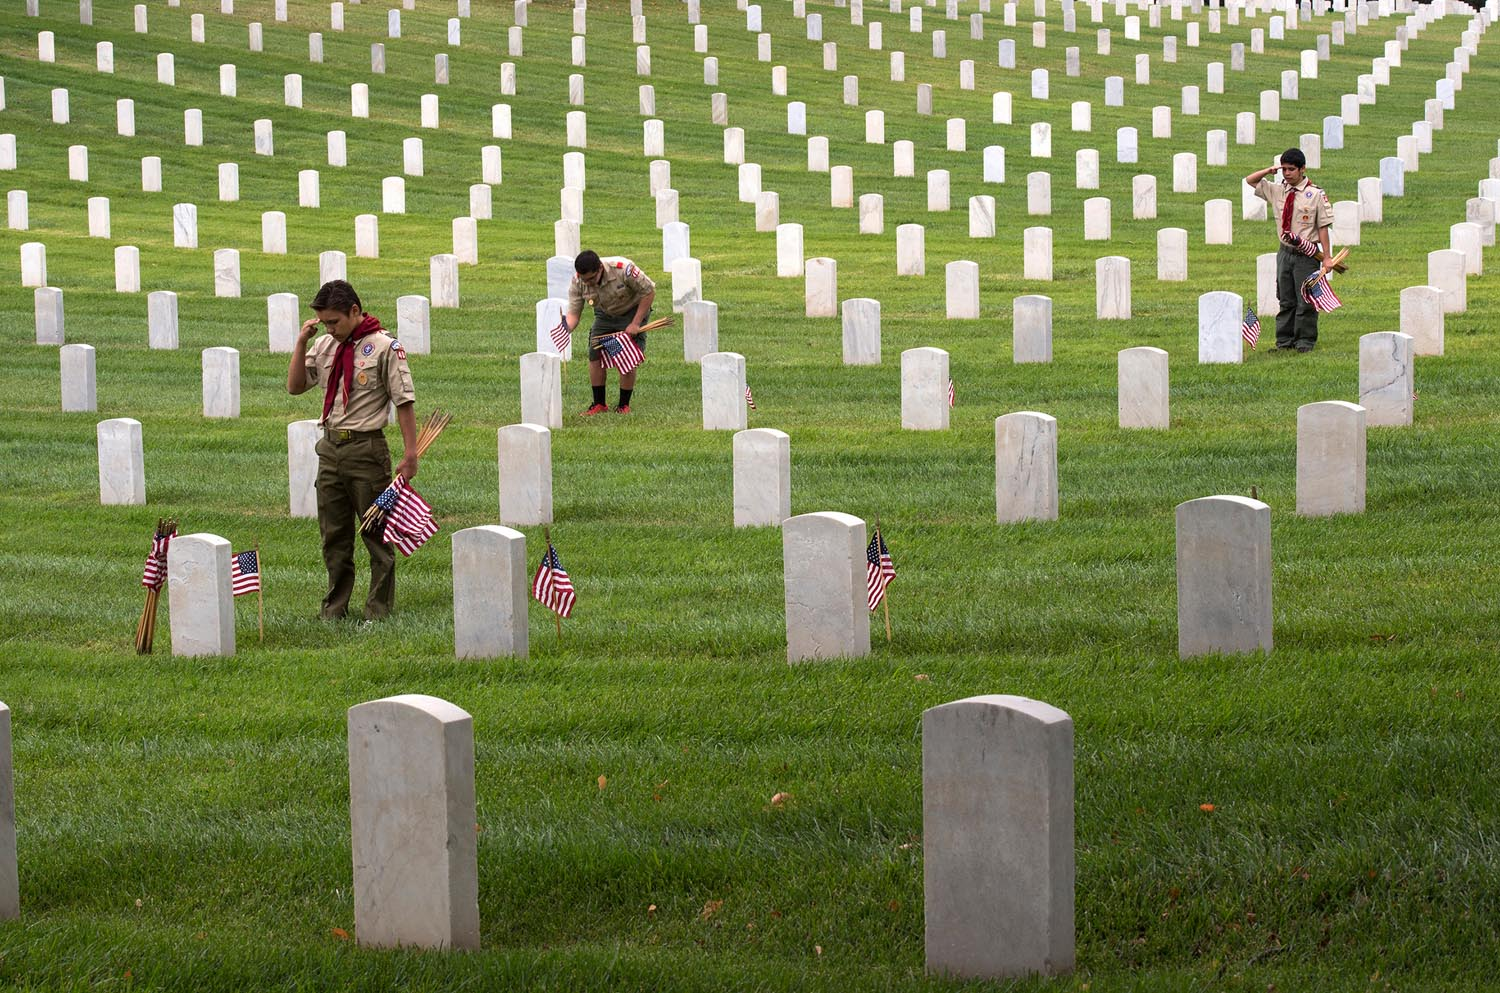 From left, Boy Scouts Troop 400, Dakota Hansen, 14, Christian Pinn, 14, and Kenny Grijalva, 15, place American flags, say the names and render salutes at the Los Angeles National Cemetery on Saturday. Hundreds of L.A. area Boy Scouts, Girls Scouts, Sea Cadets and others place American flags on each grave of over 88,000 war veterans.